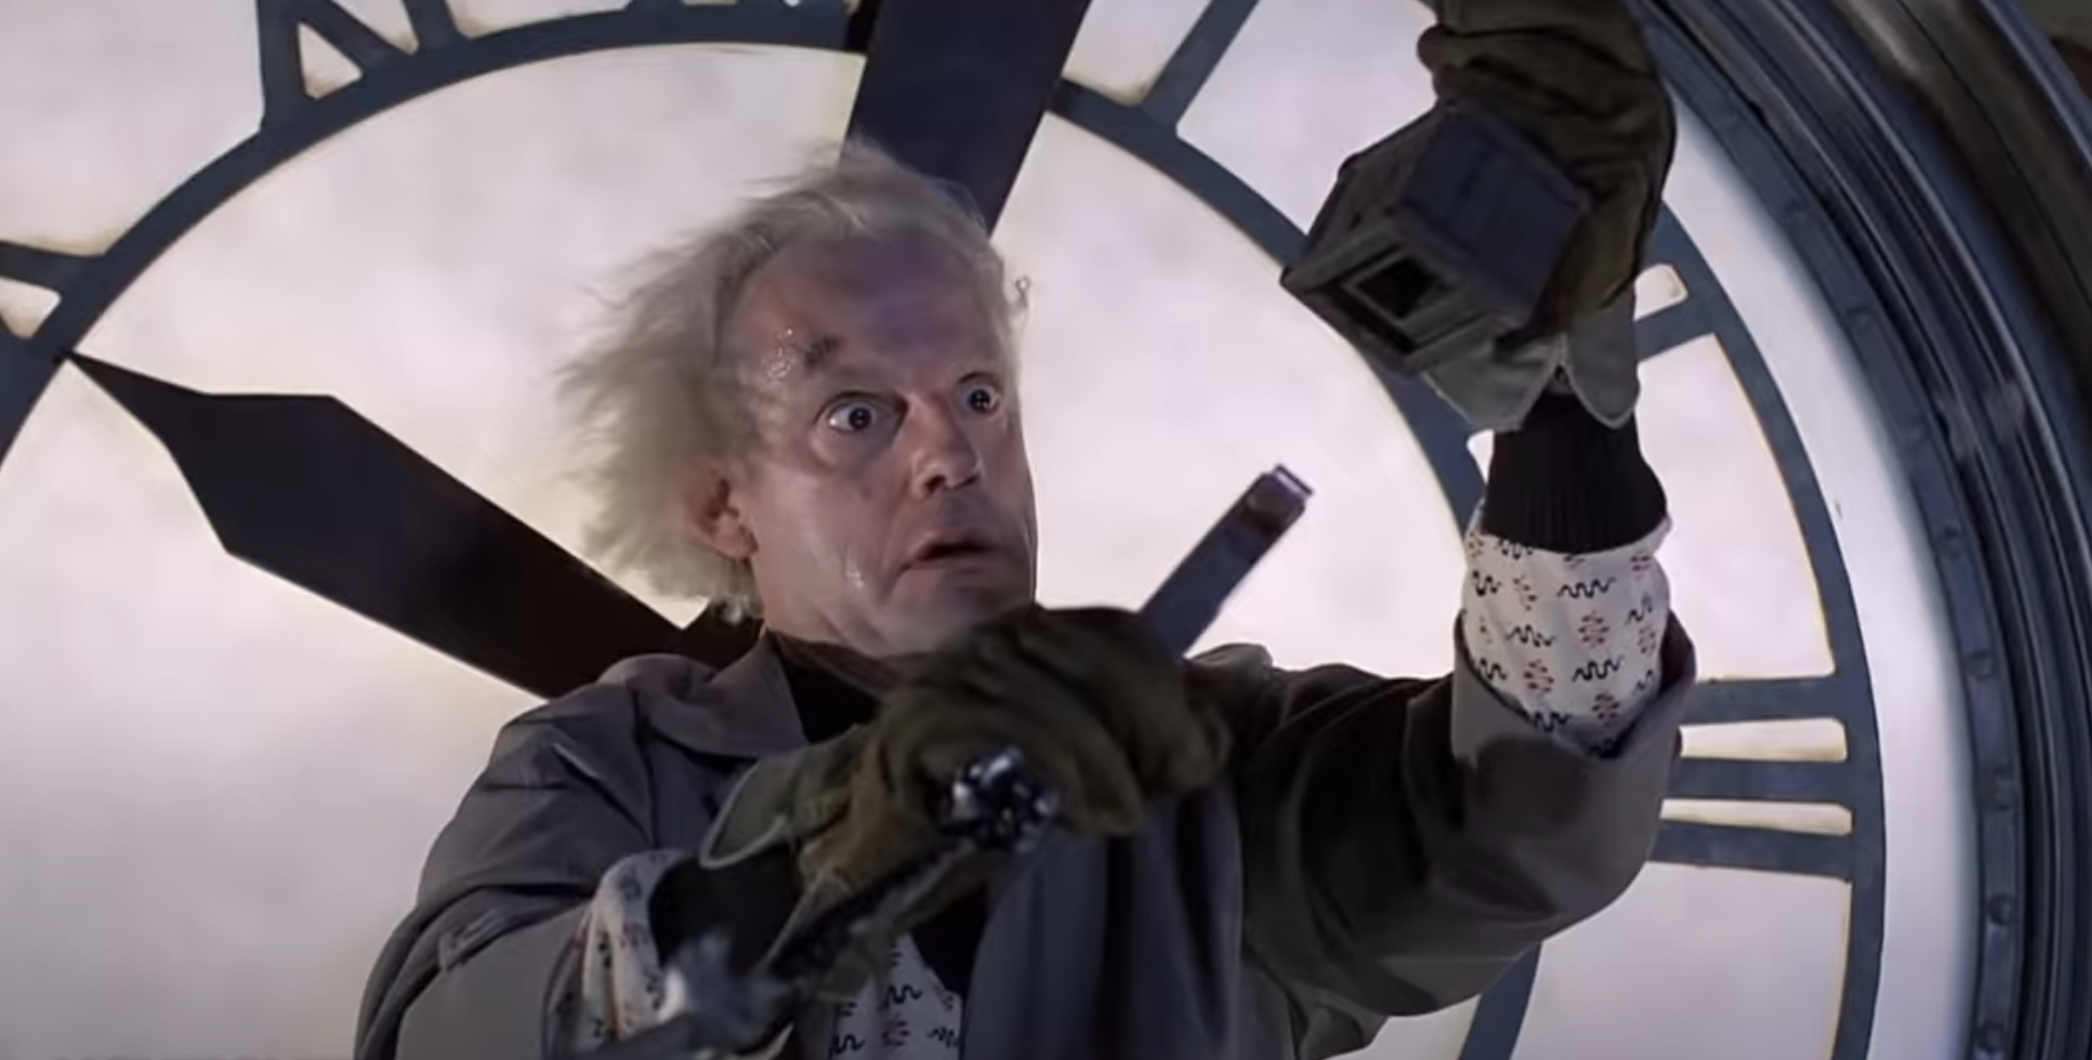 Doc standing on the clock tower